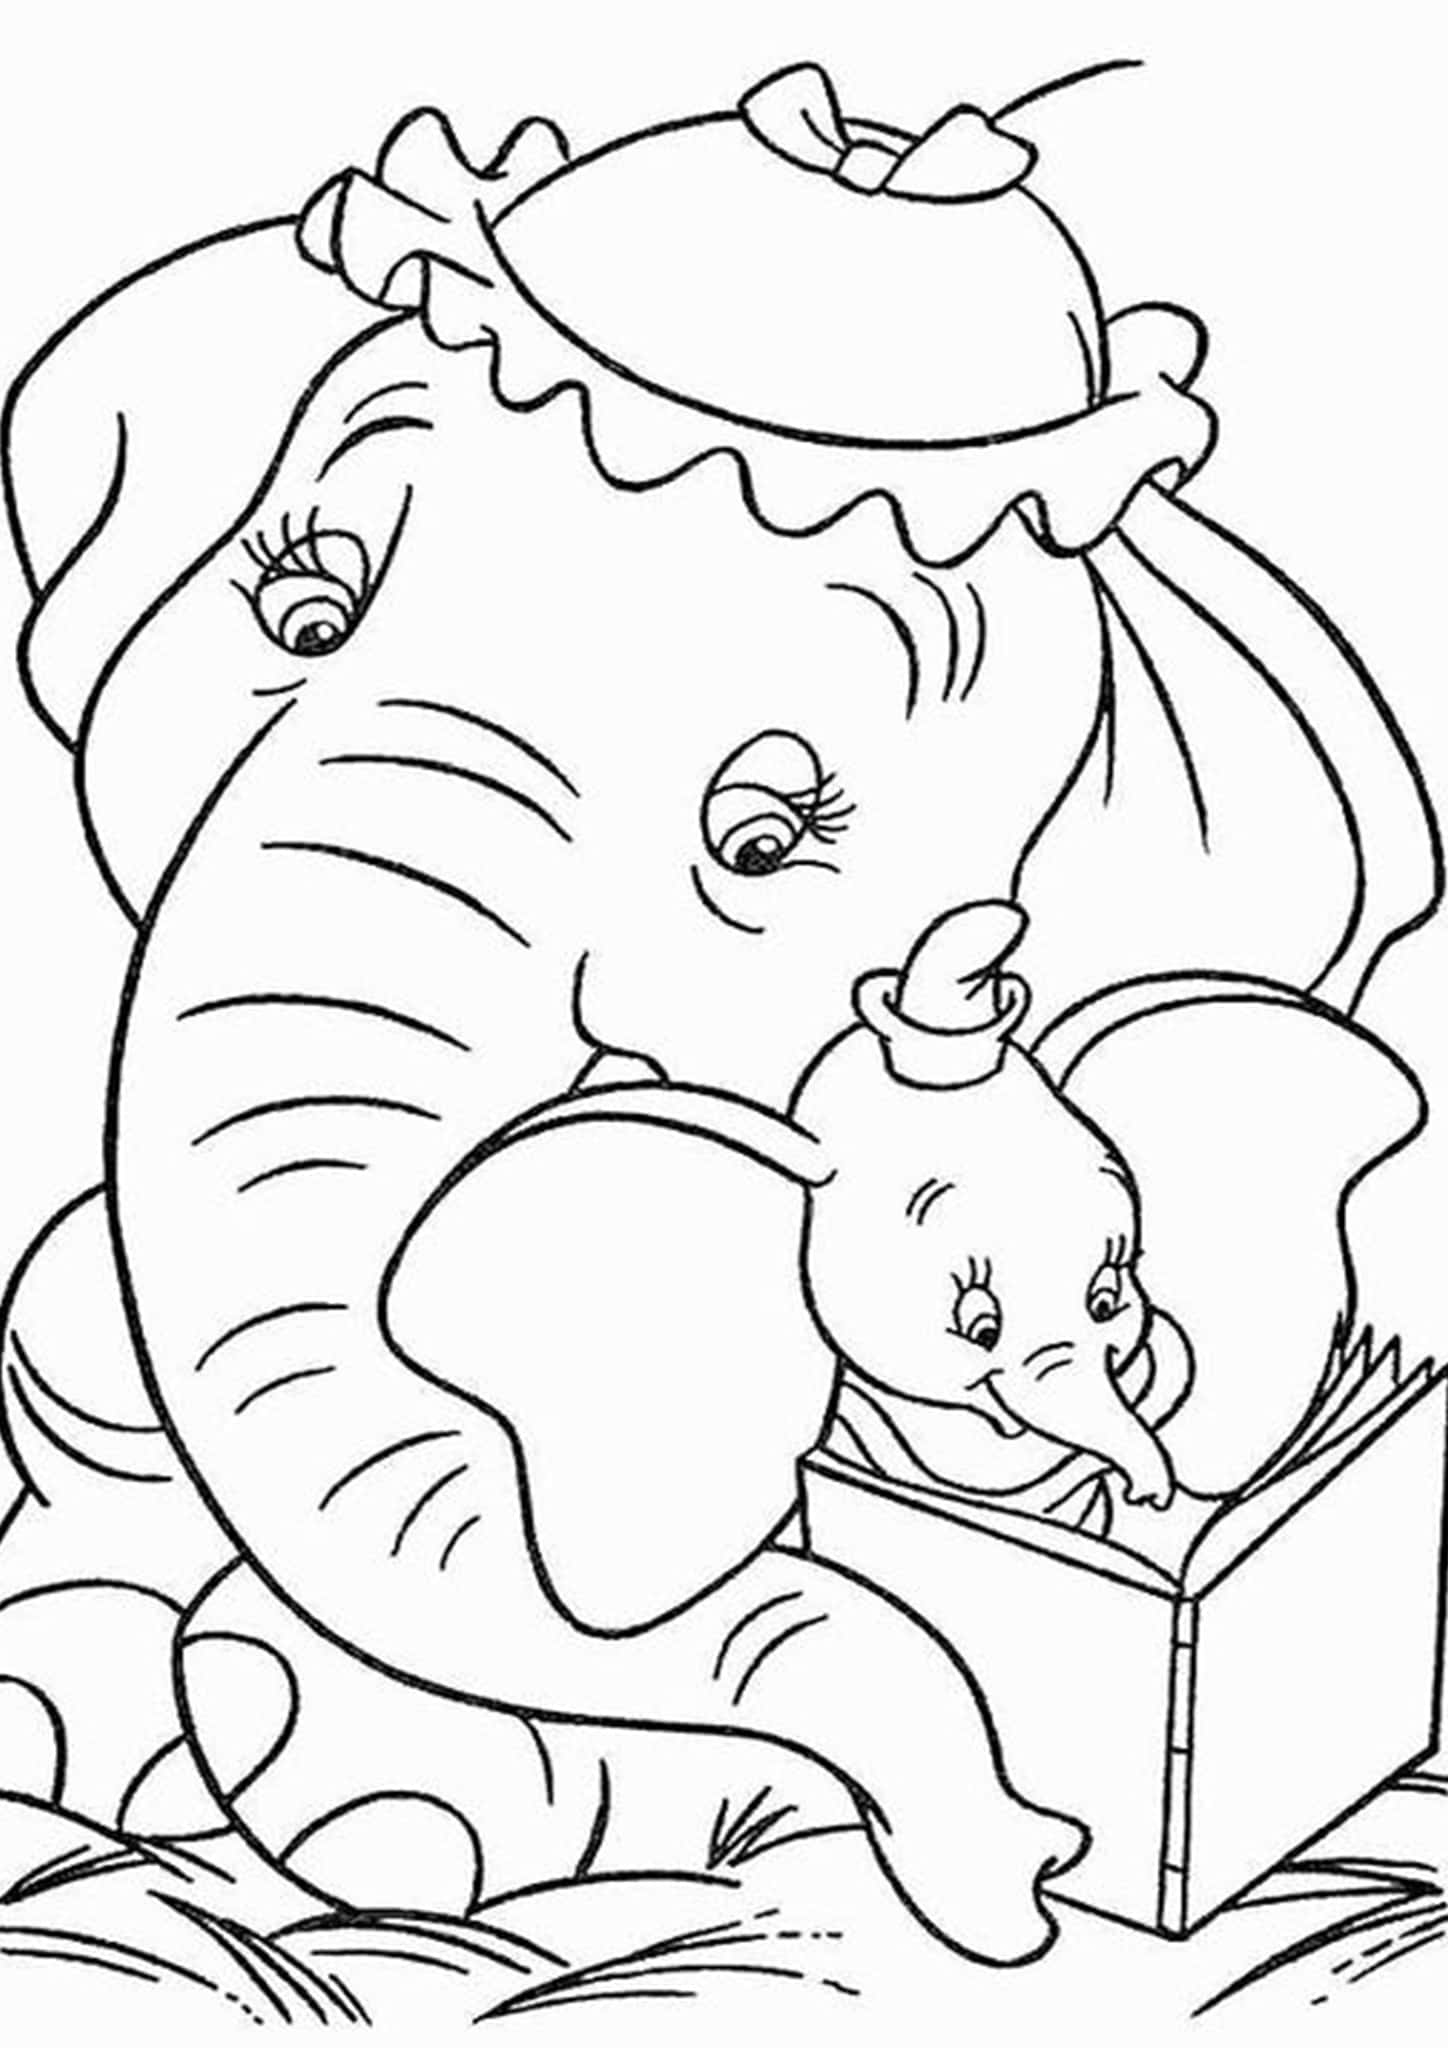 Free & Easy To Print Elephant Coloring Pages - Tulamama